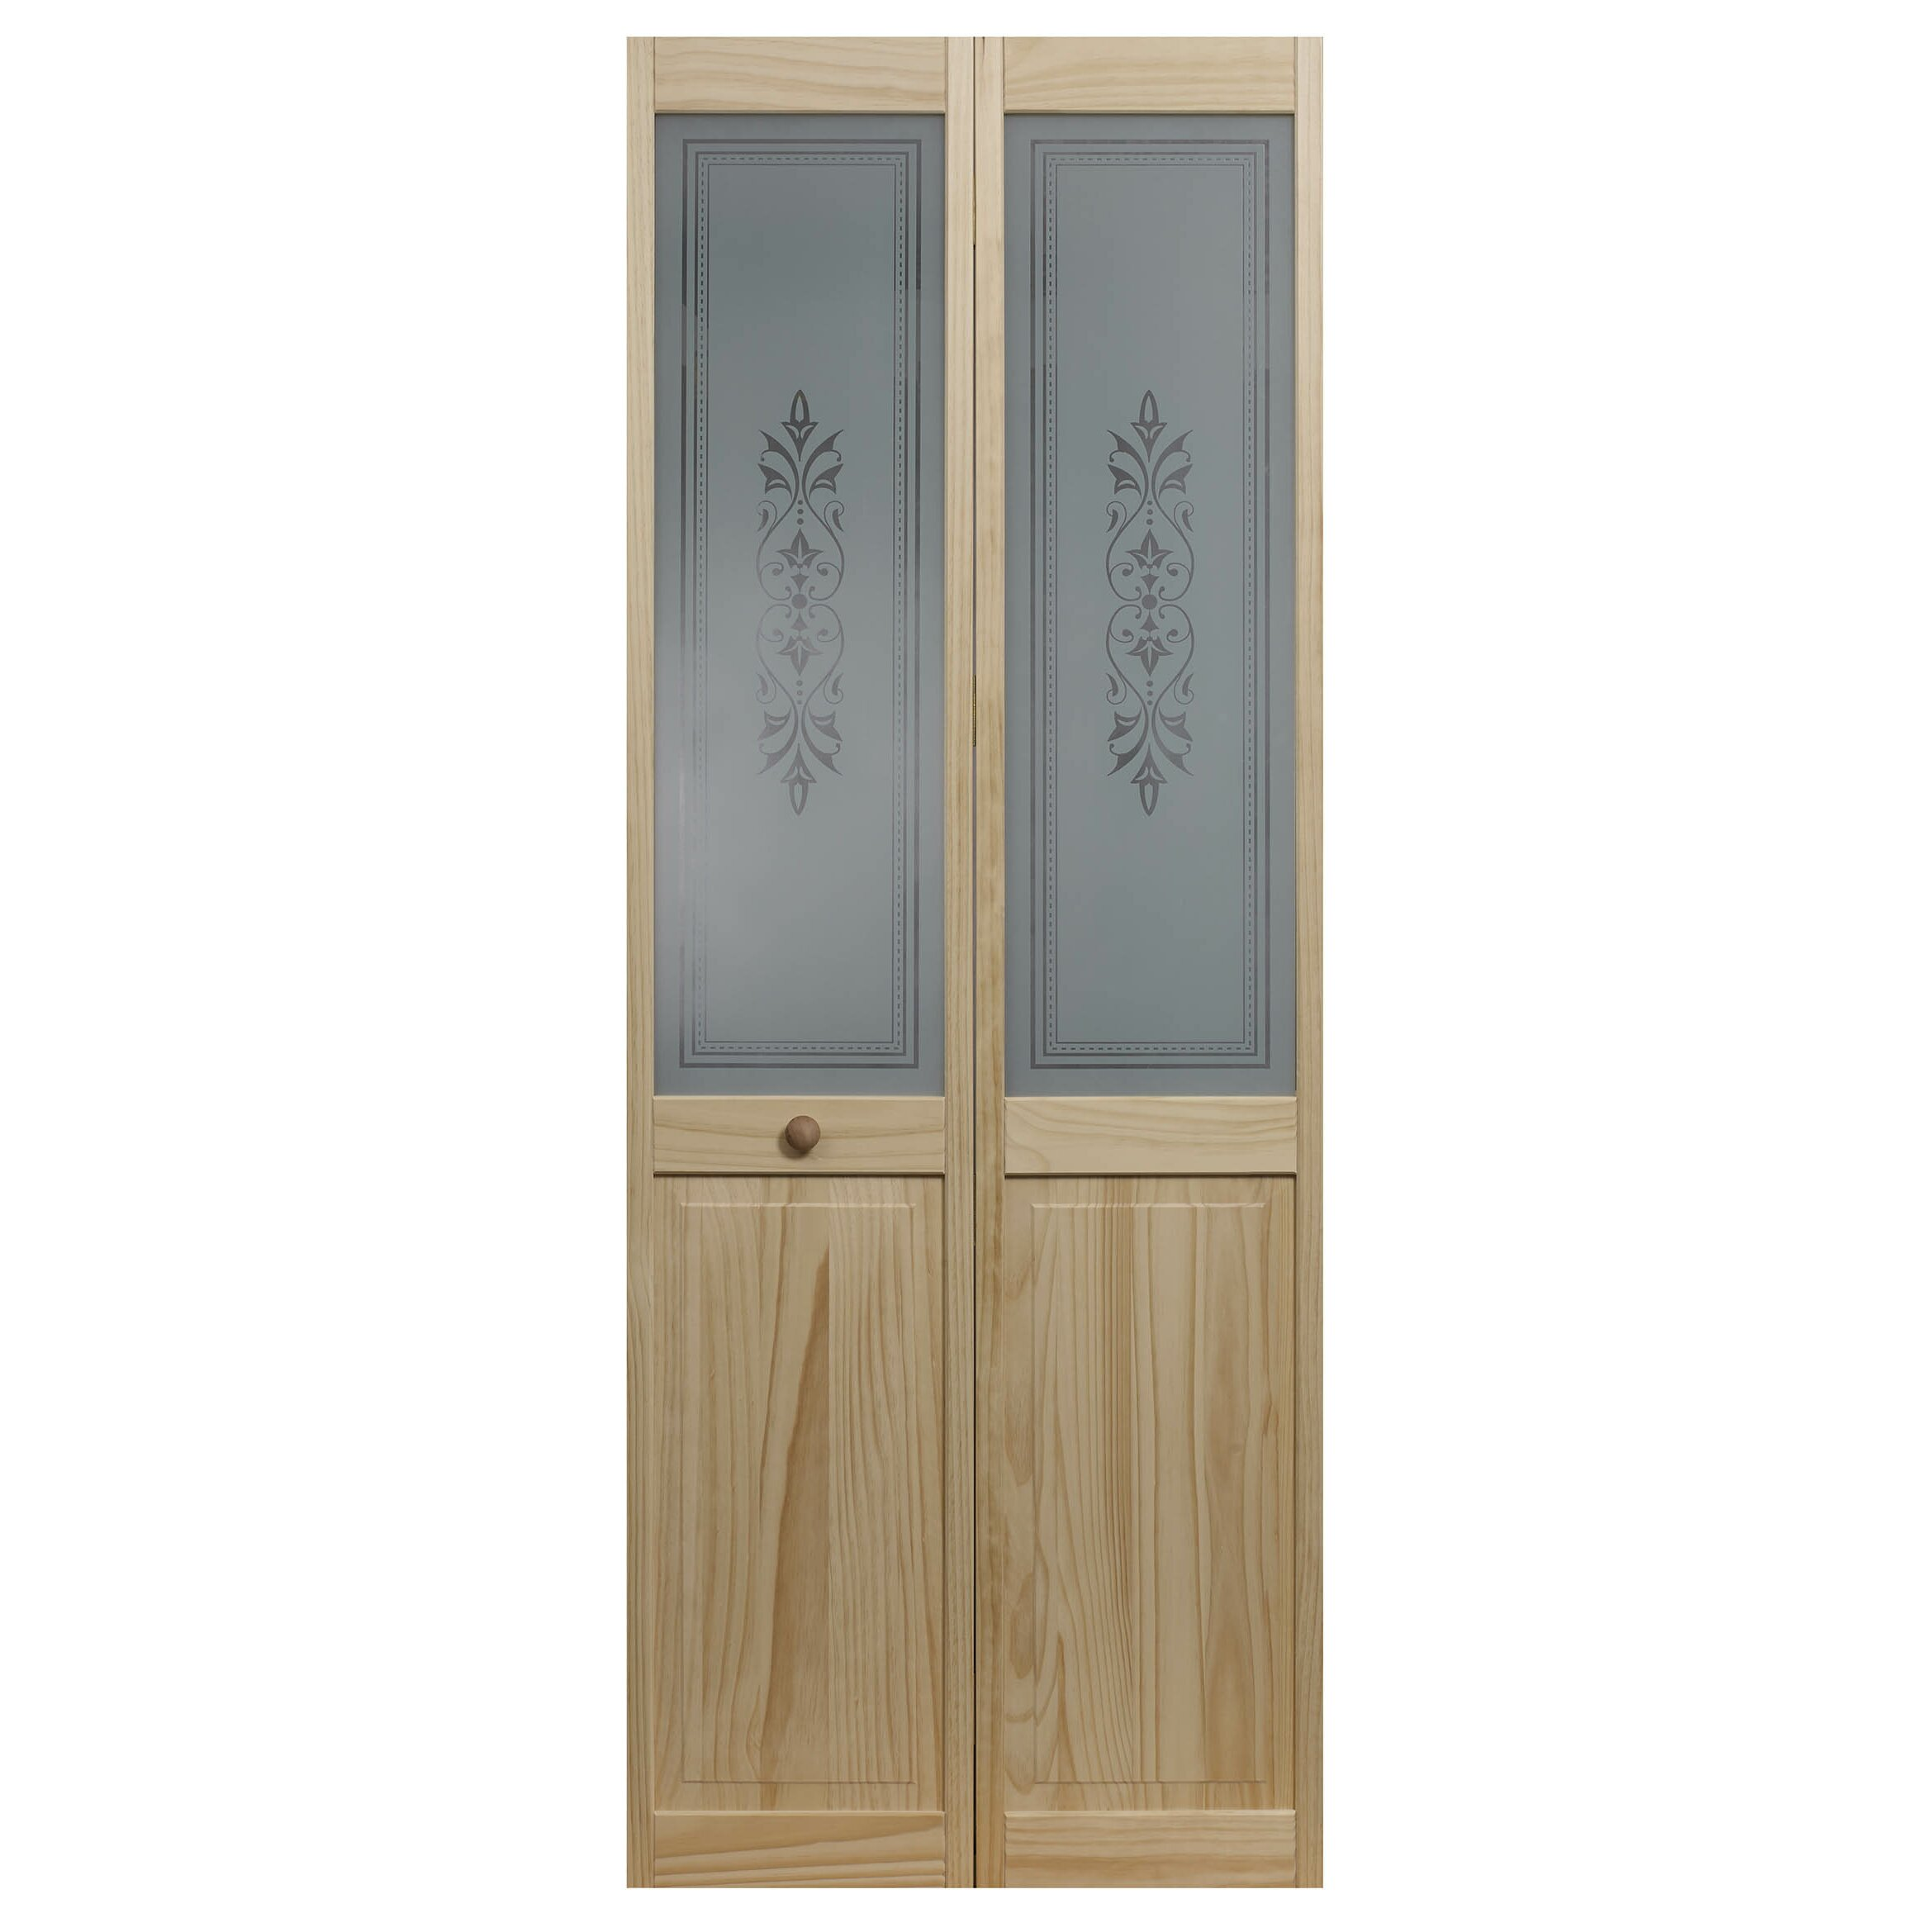 2339 #836A48  Materials Bi Fold Interior Doors LTL Bi Fold Doors SKU: LTLD1022 pic Ltl Home Products Inc Folding Doors 29112339